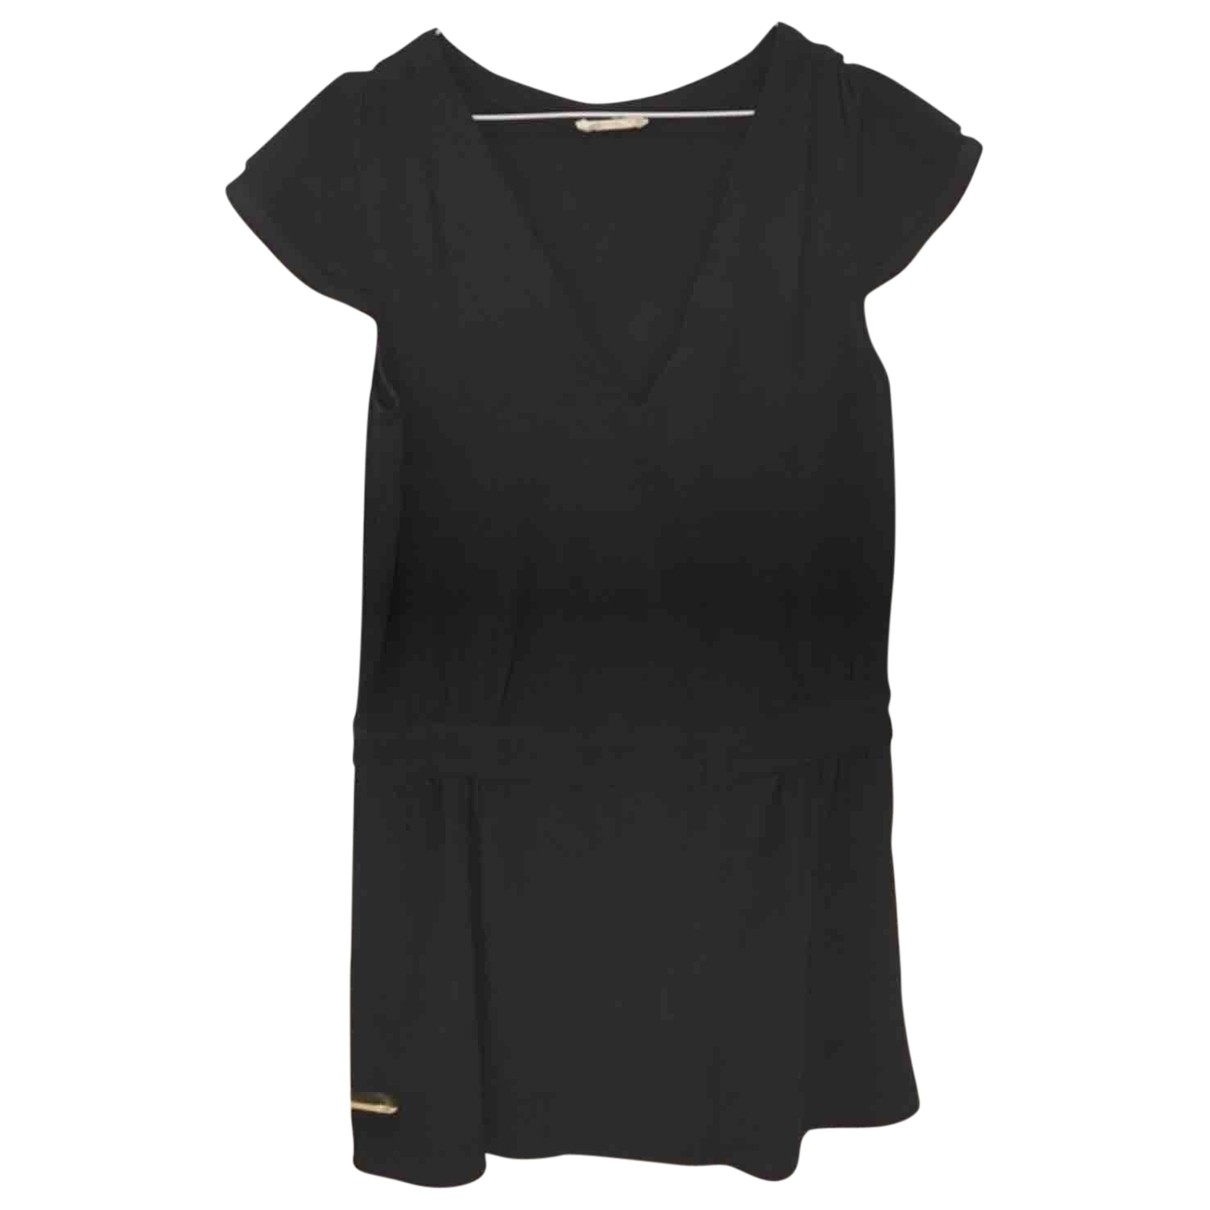 Ba&sh \N Black dress for Women 1 0-5